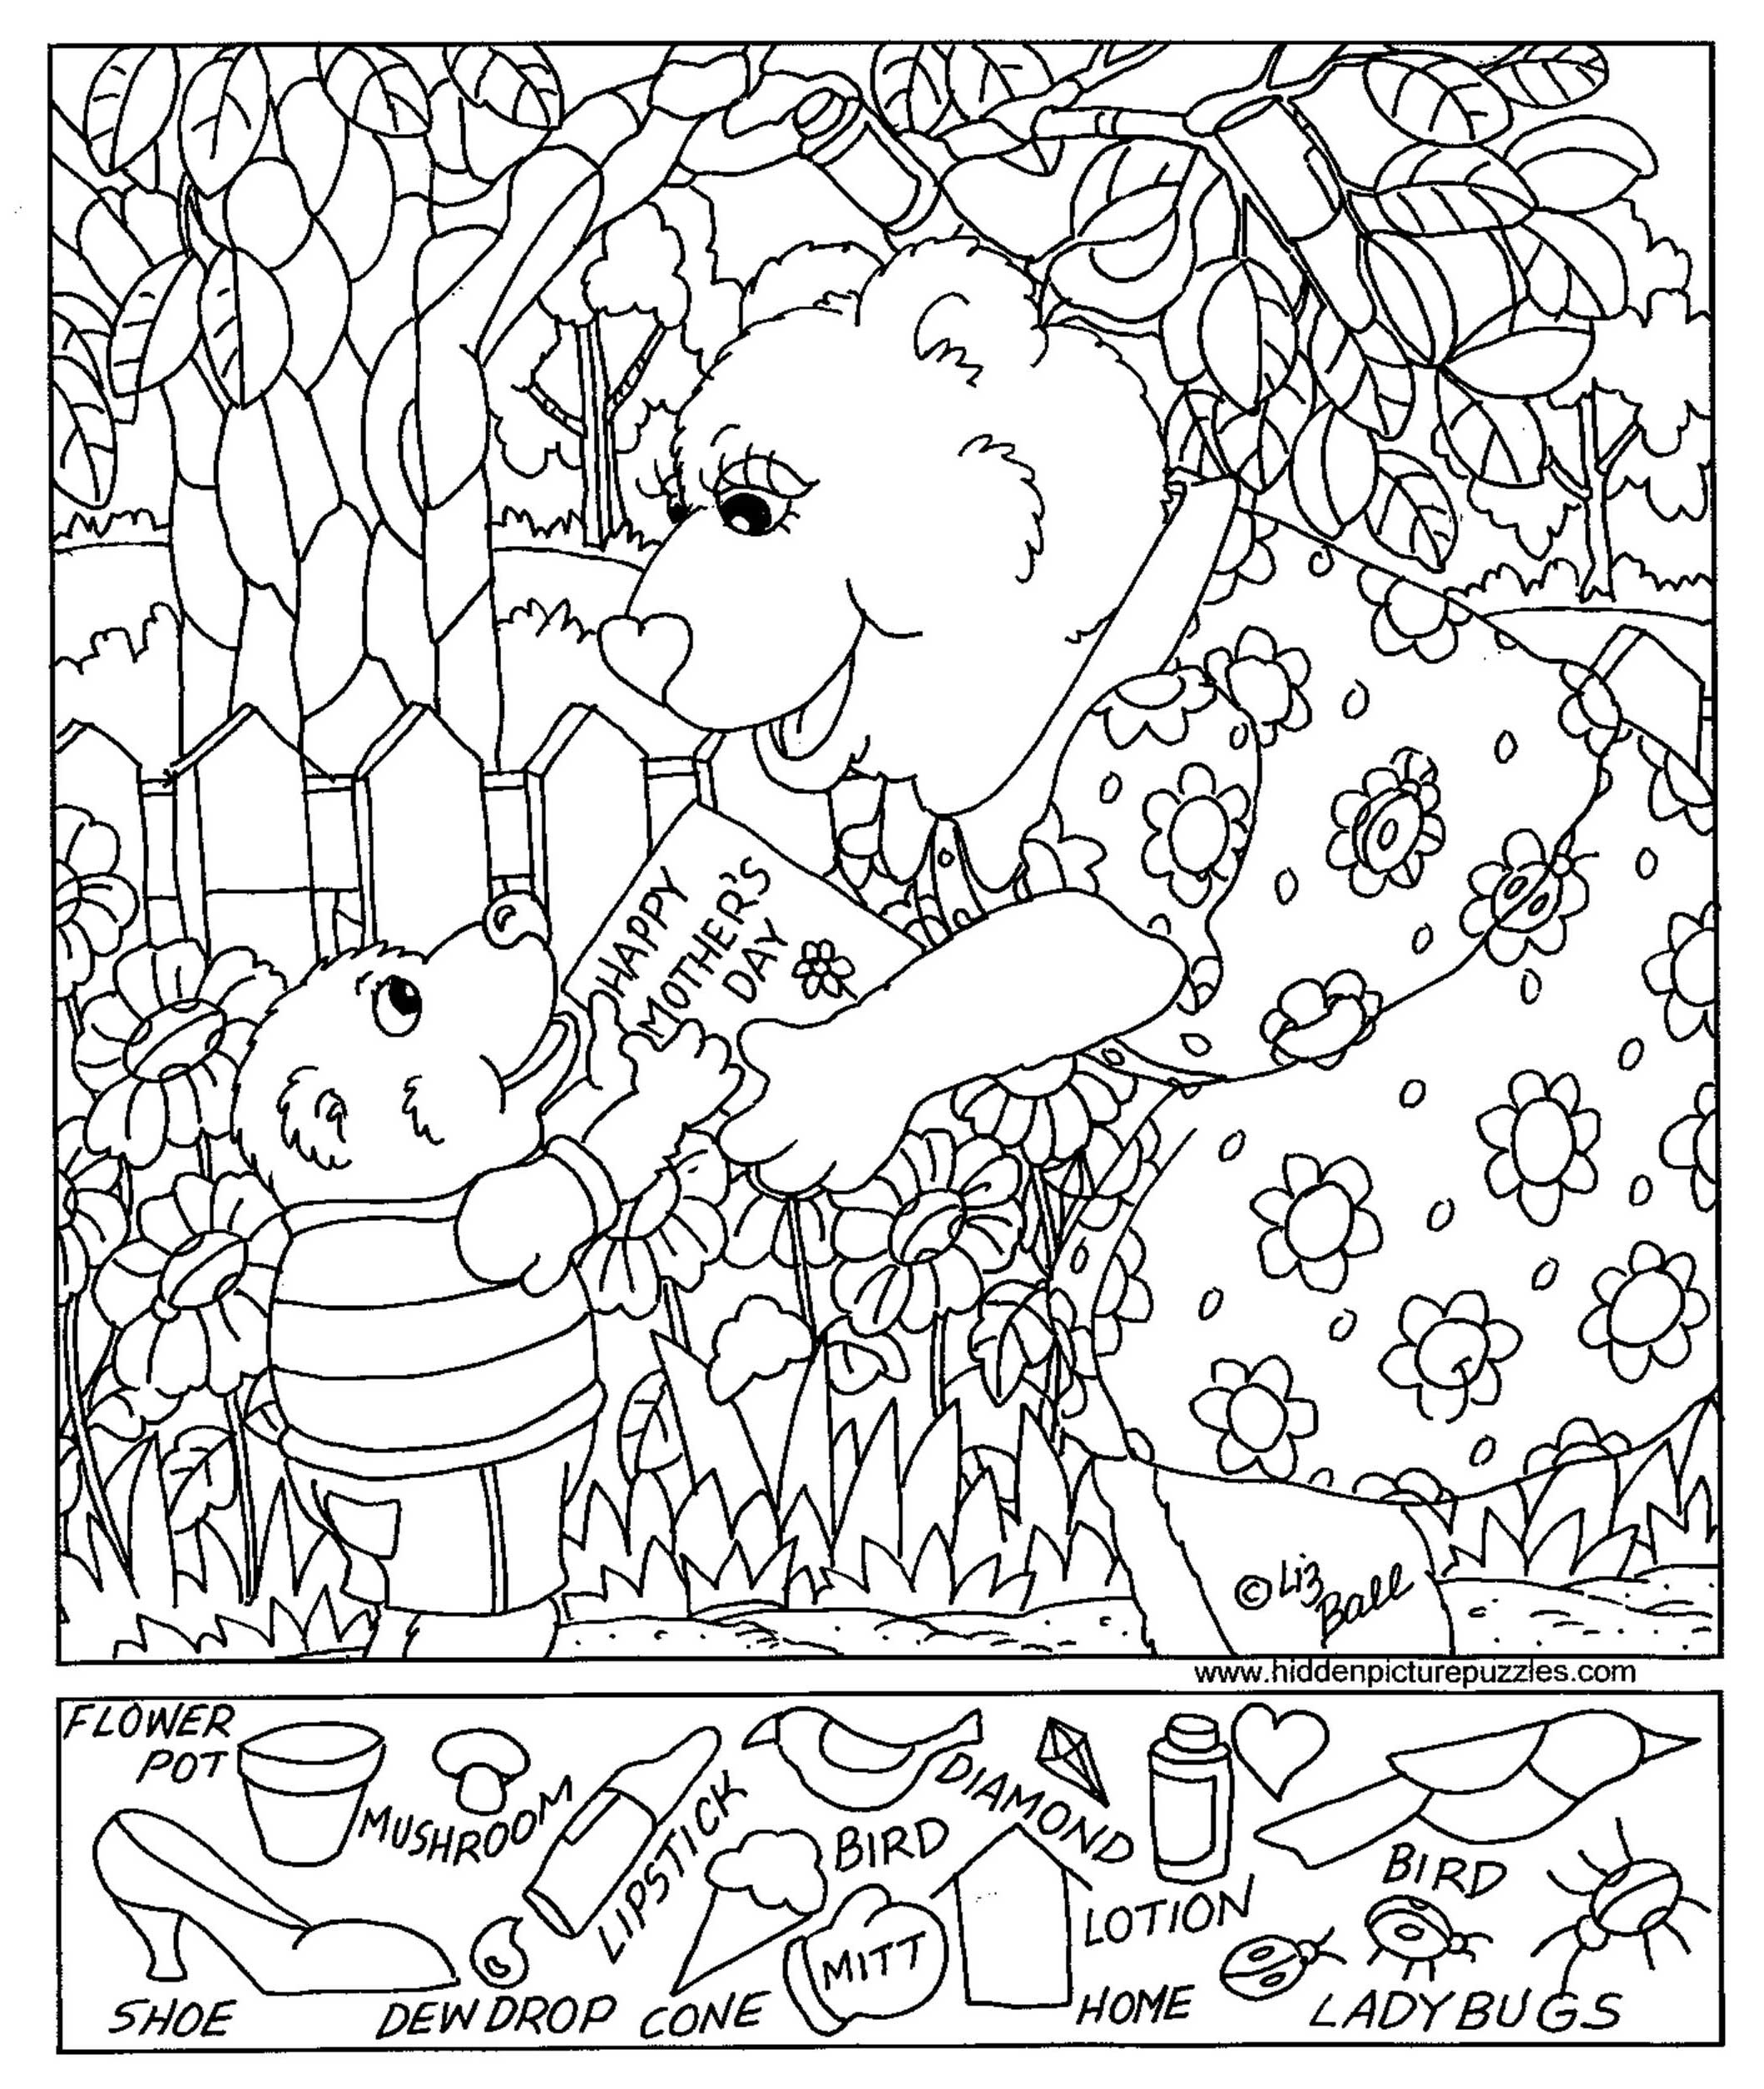 Coloring Page Hiddene Coloring Pages Free Printables